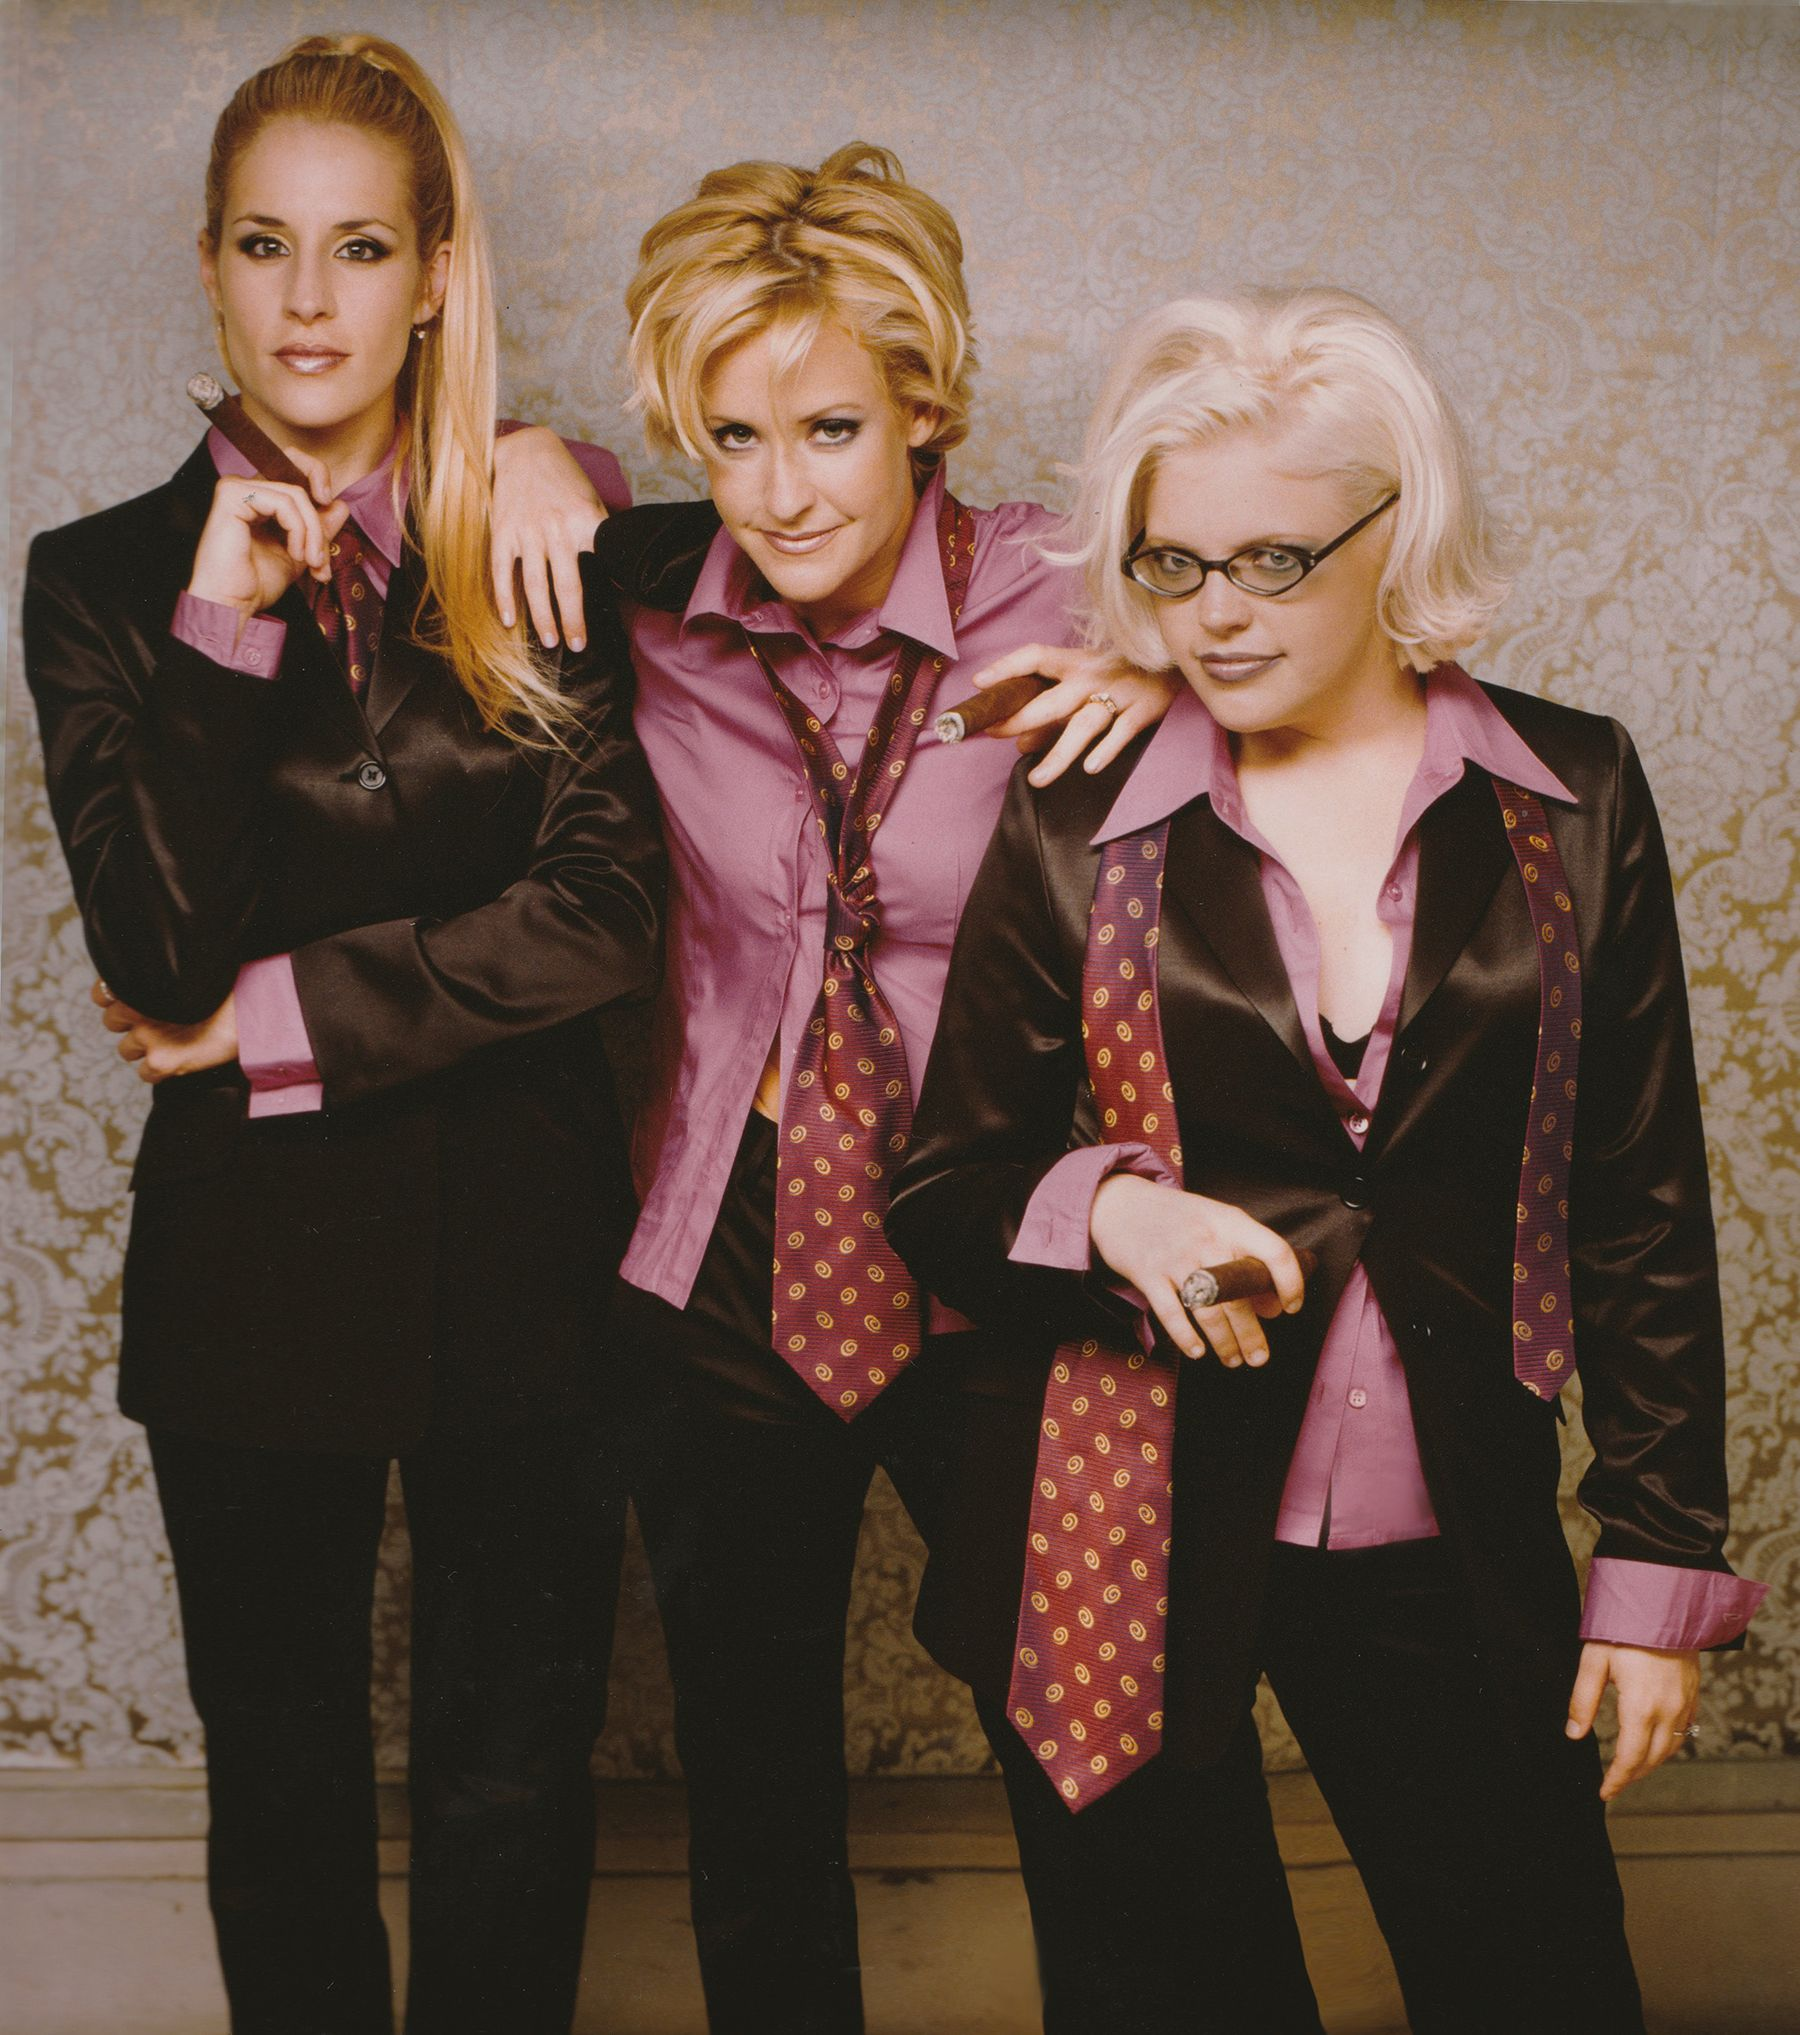 The Dixie Chicks